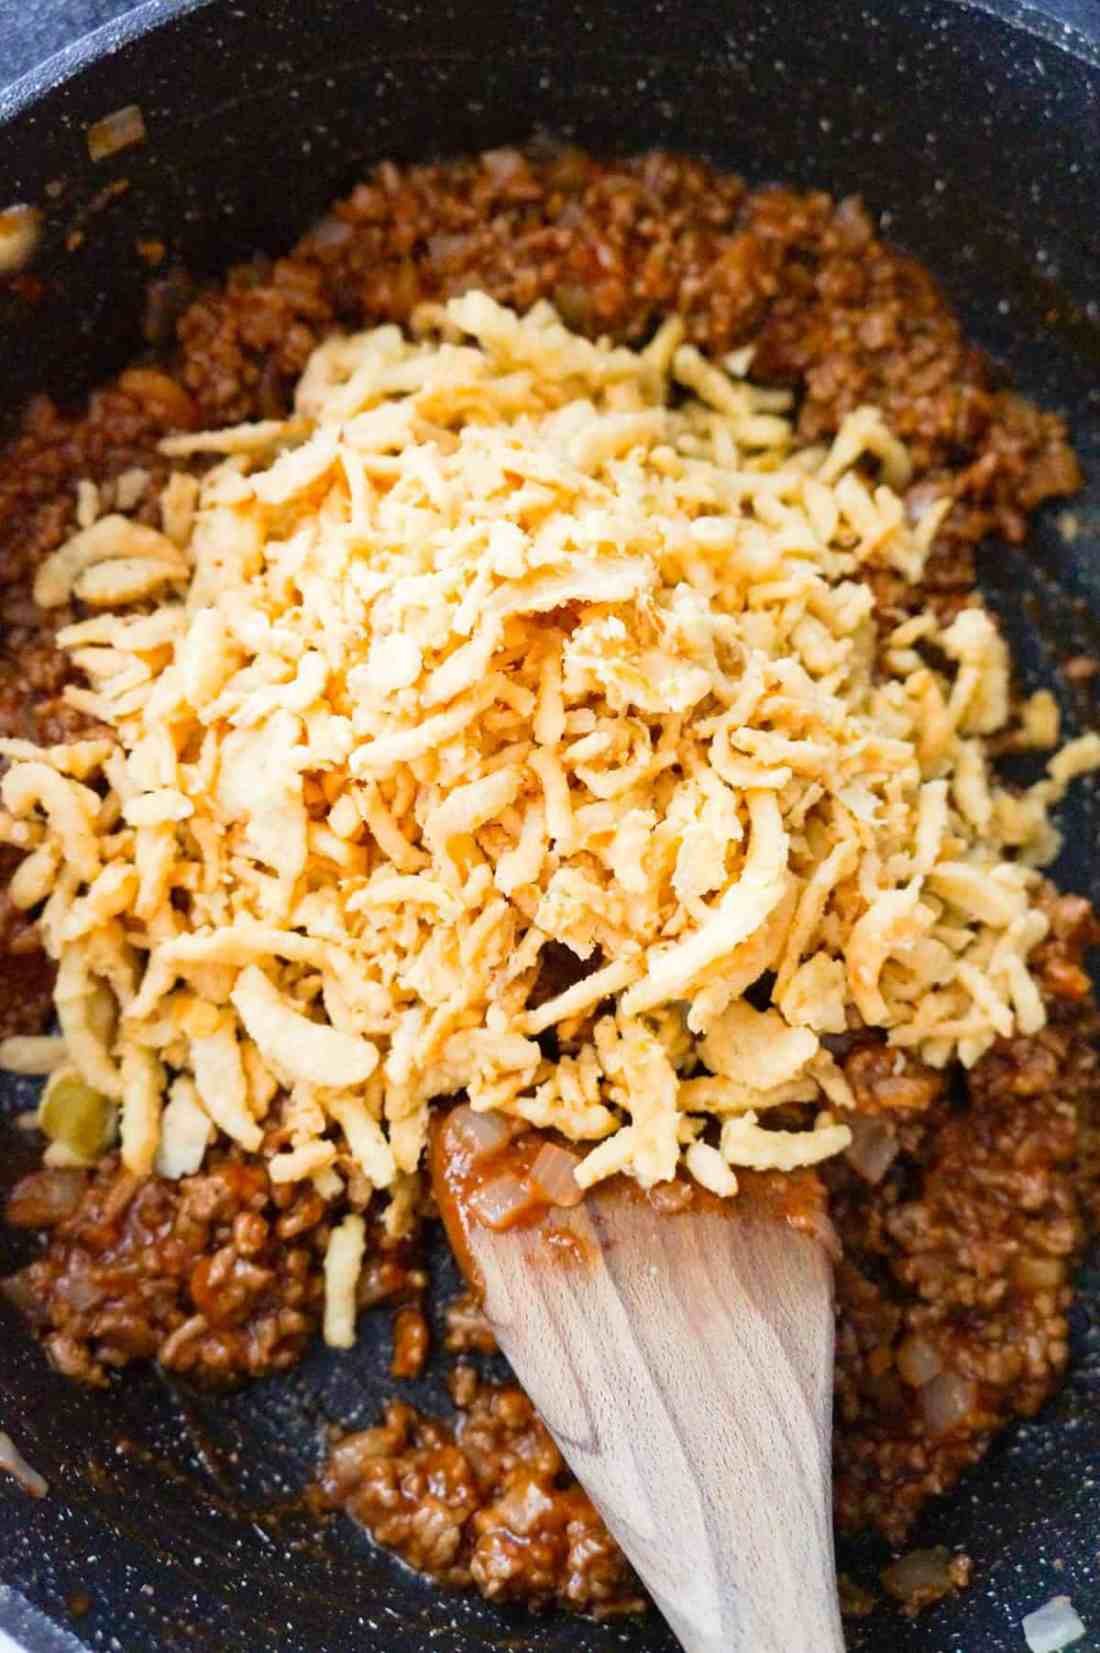 French's crispy fried onions on top of ground beef sloppy joe mixture in a saute pan